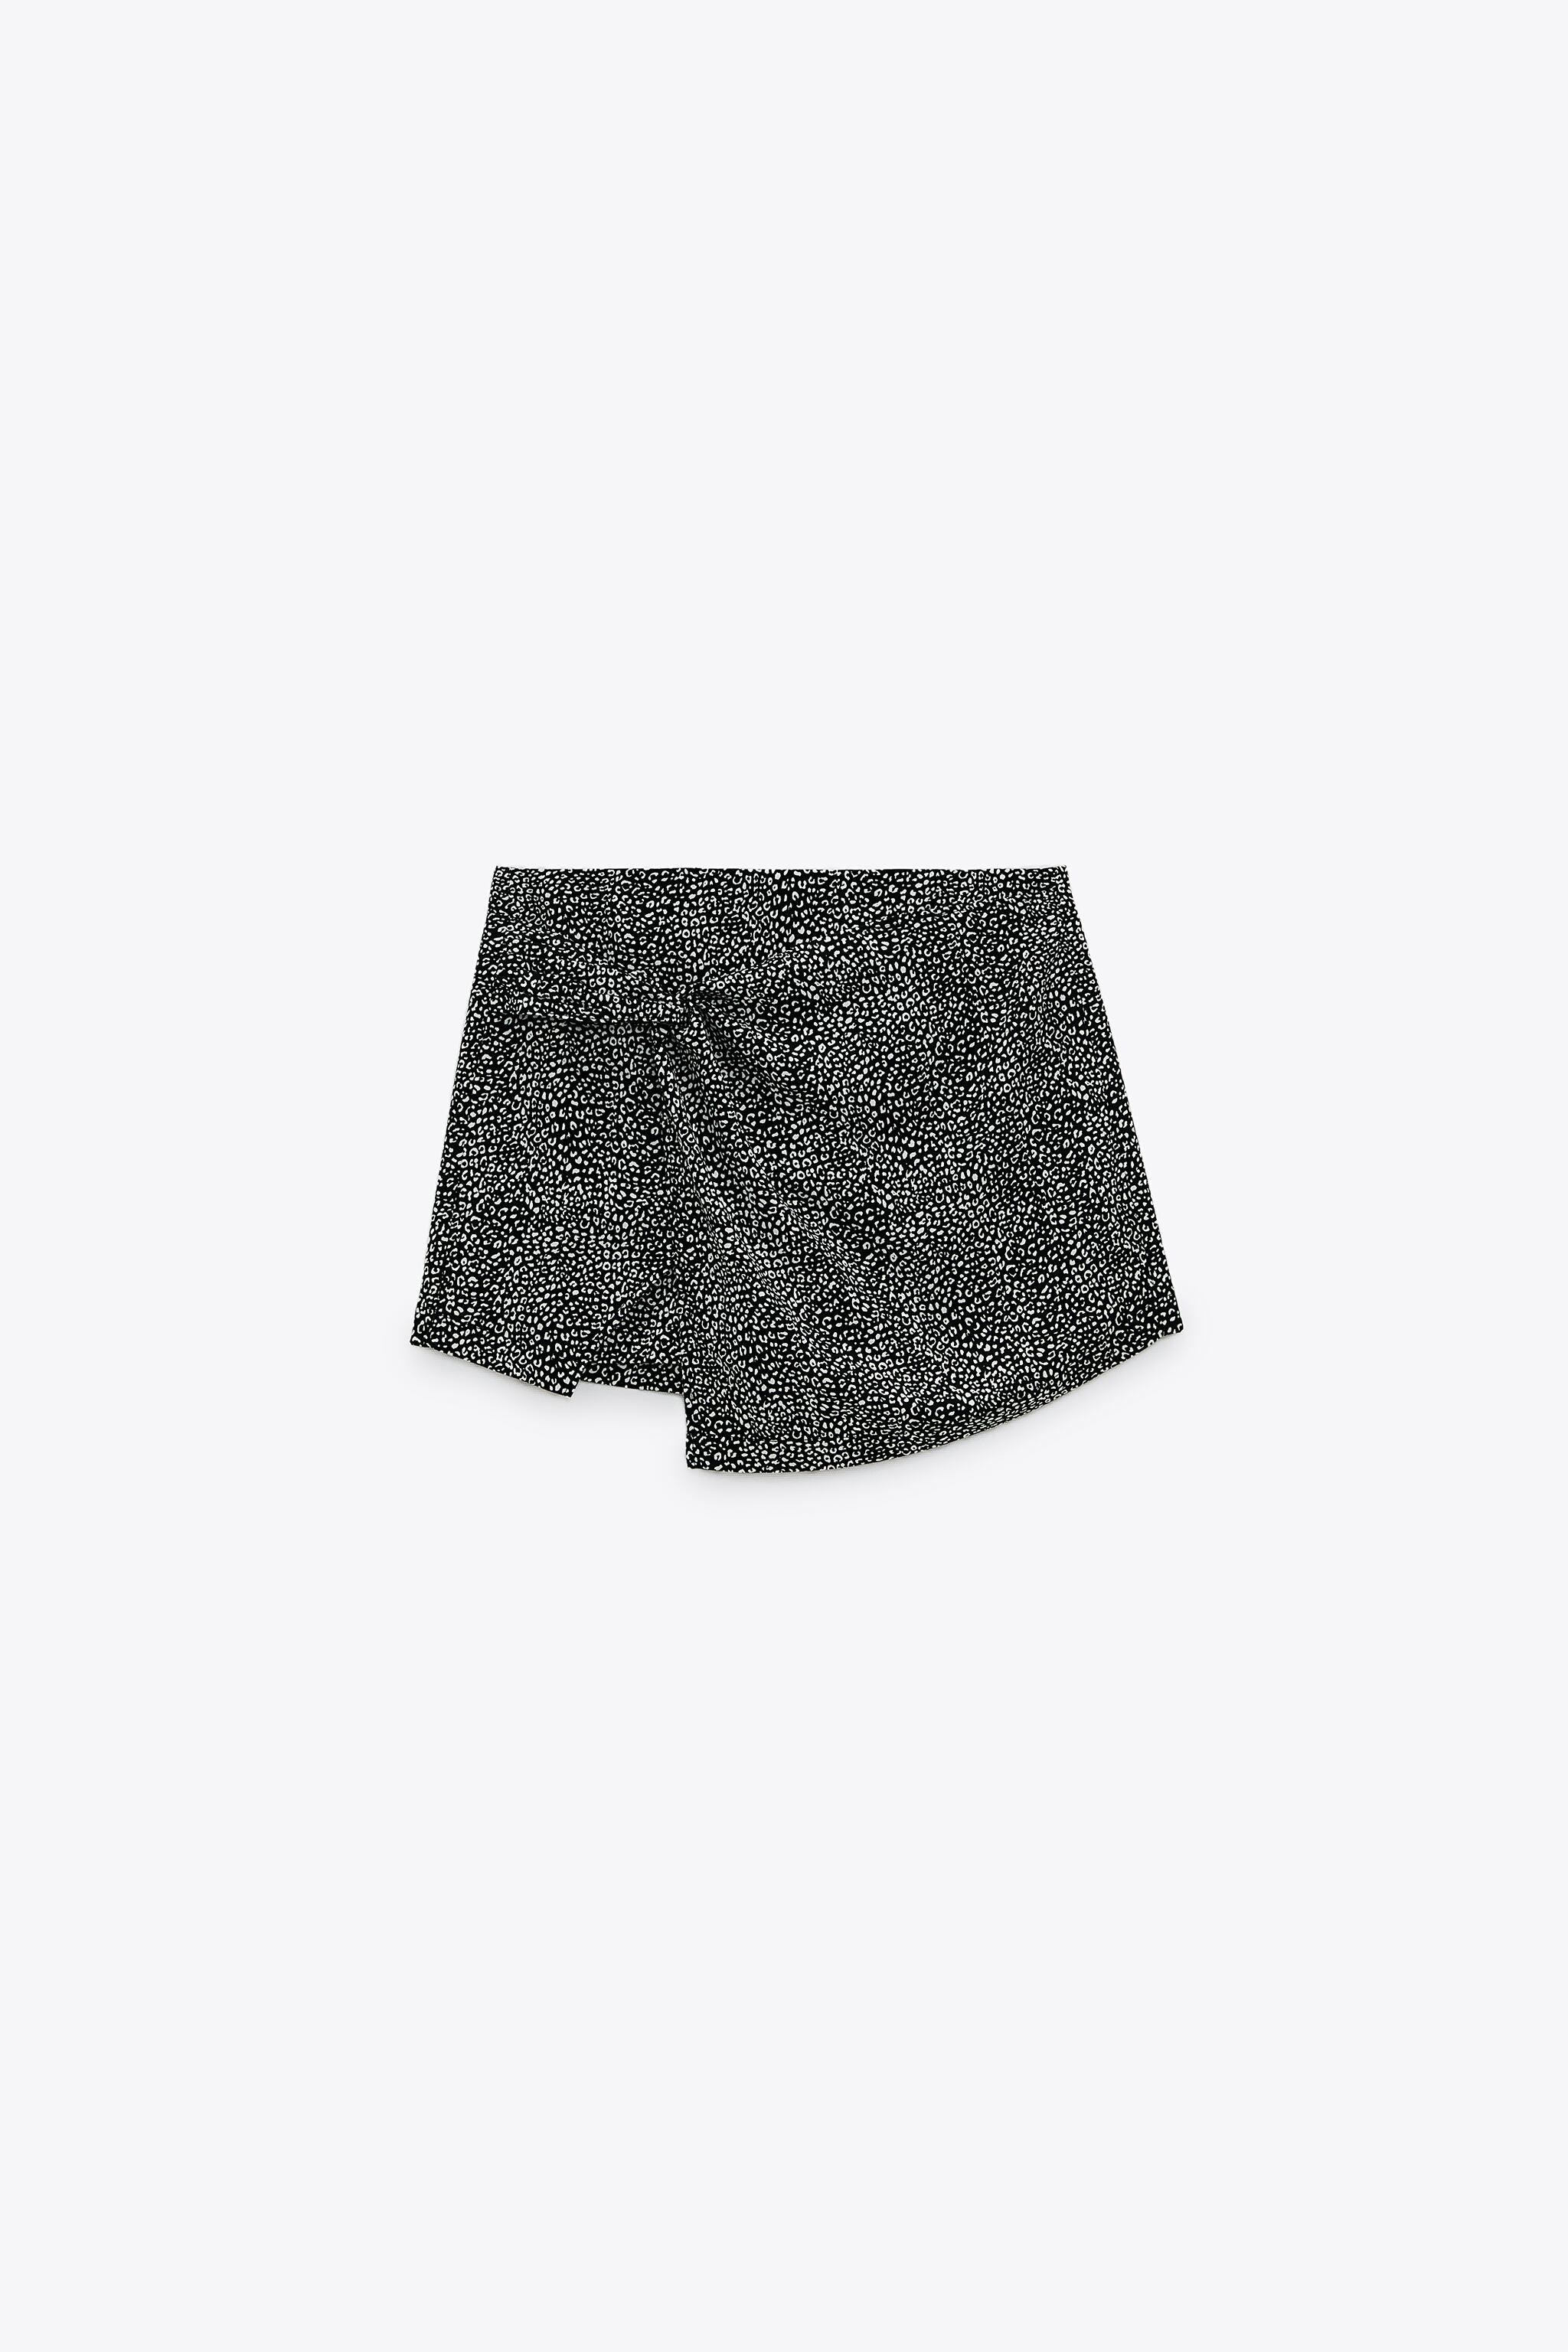 PRINTED SKORT WITH KNOT 5